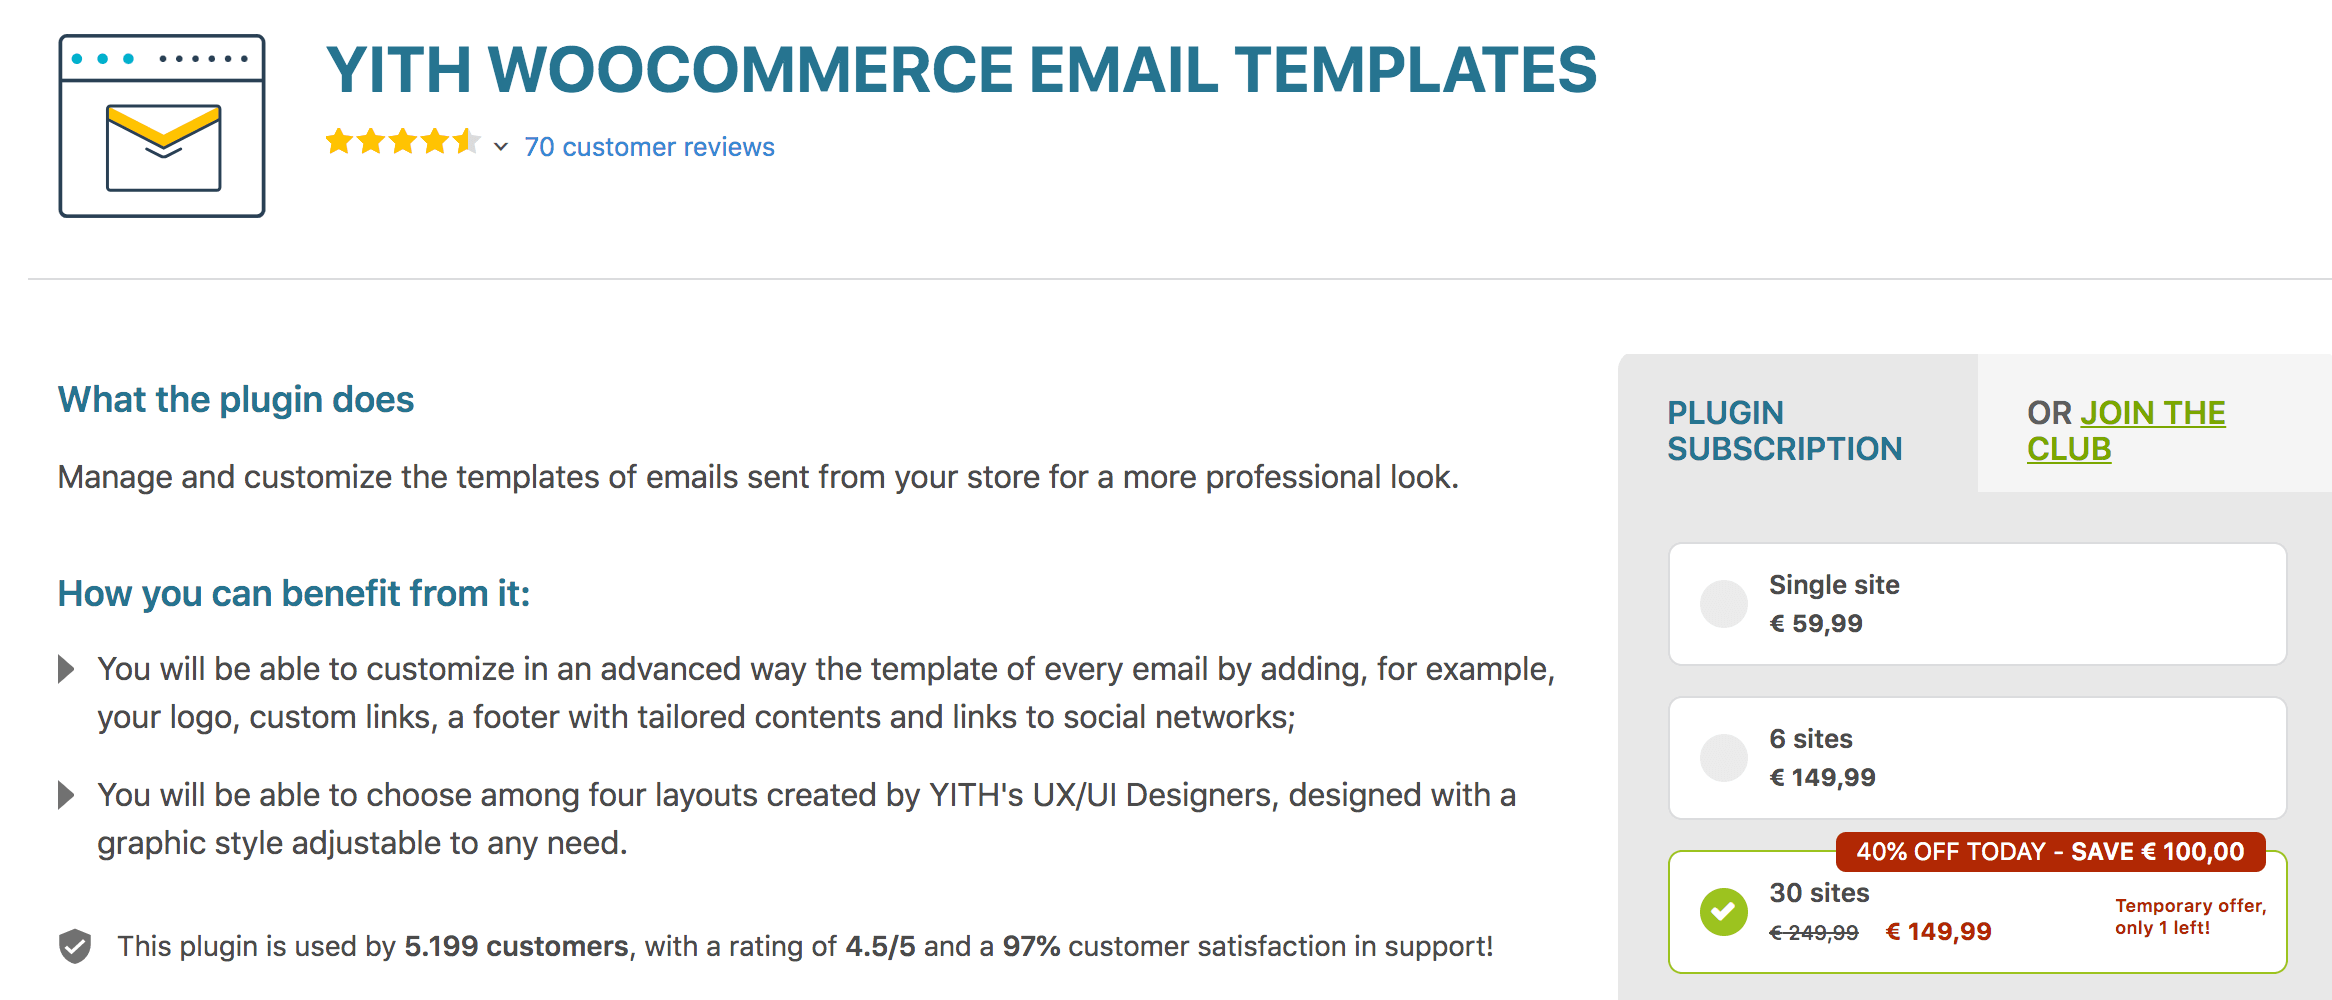 YITH WooCommerce Email Customizer